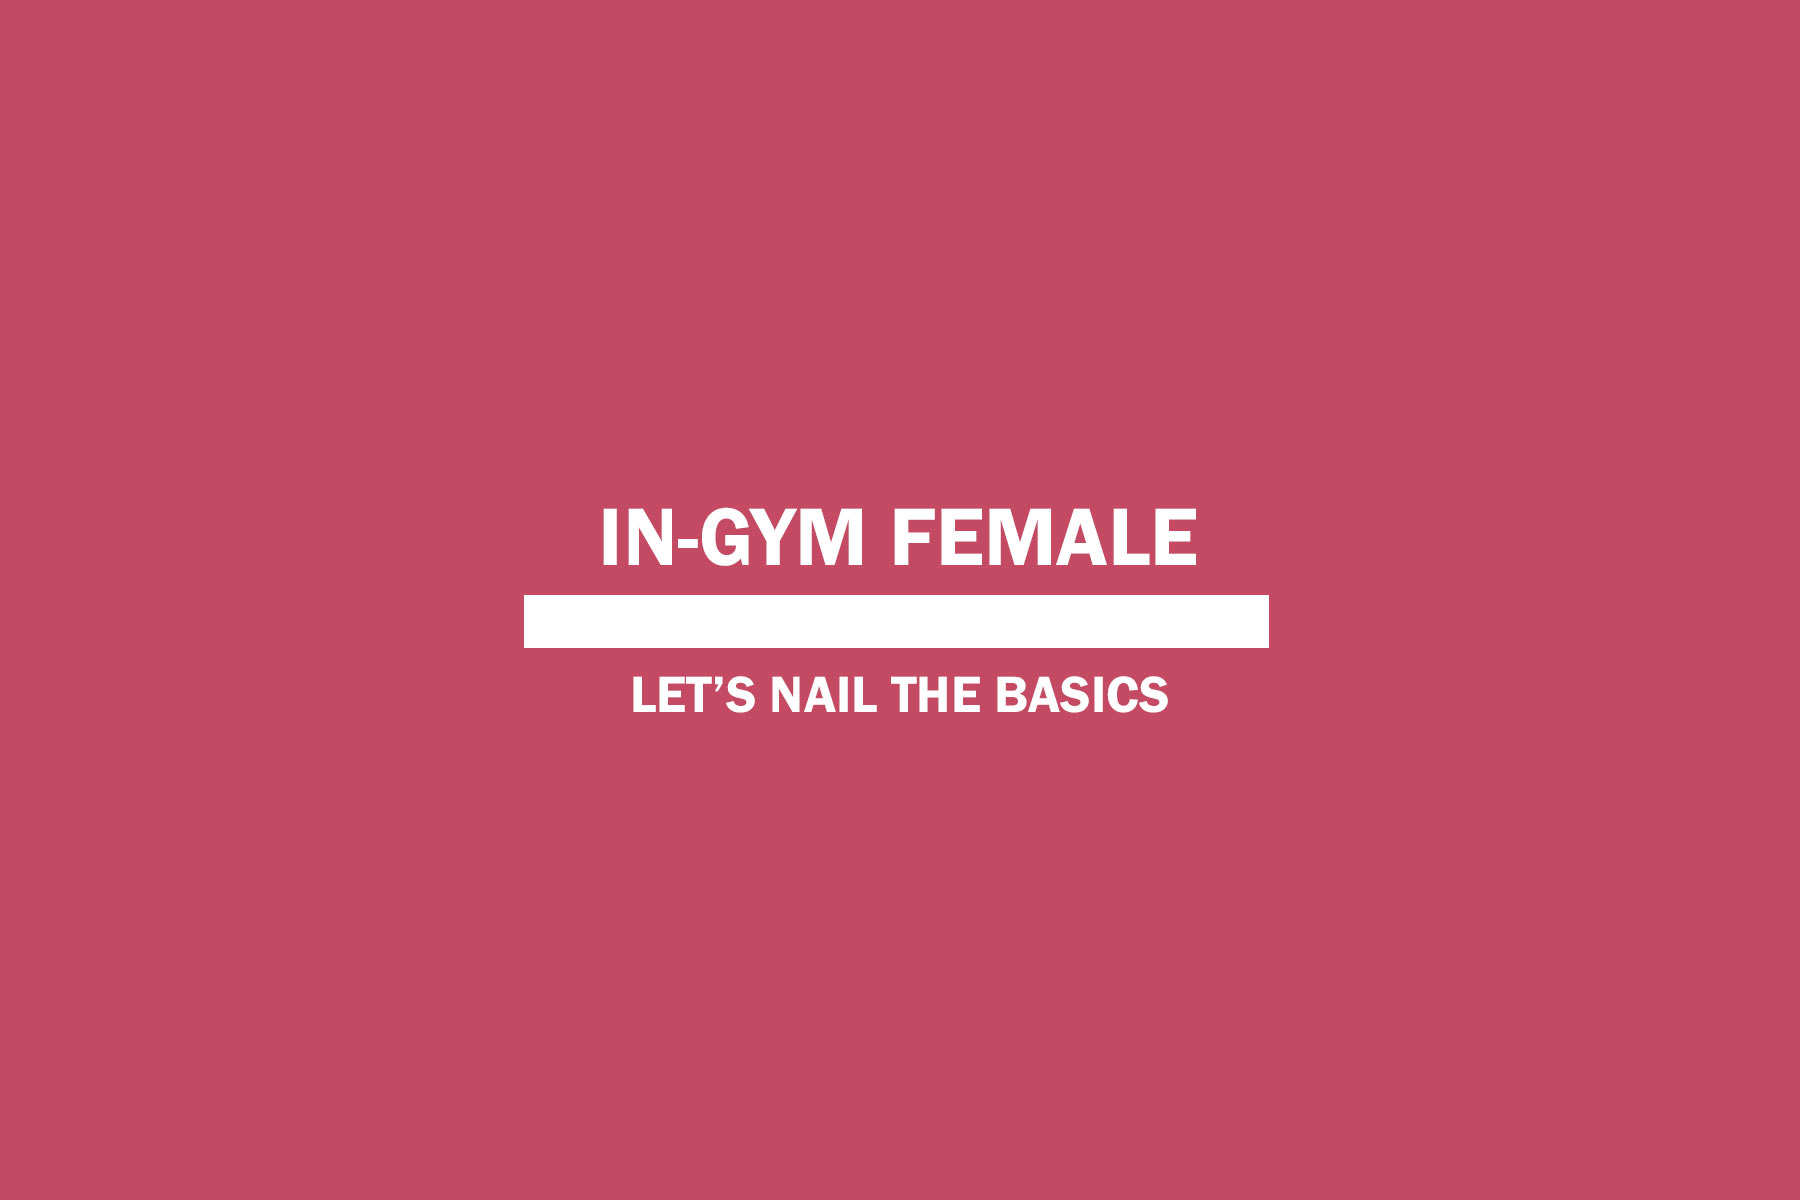 In-gym Female 15th of July to 5th of August